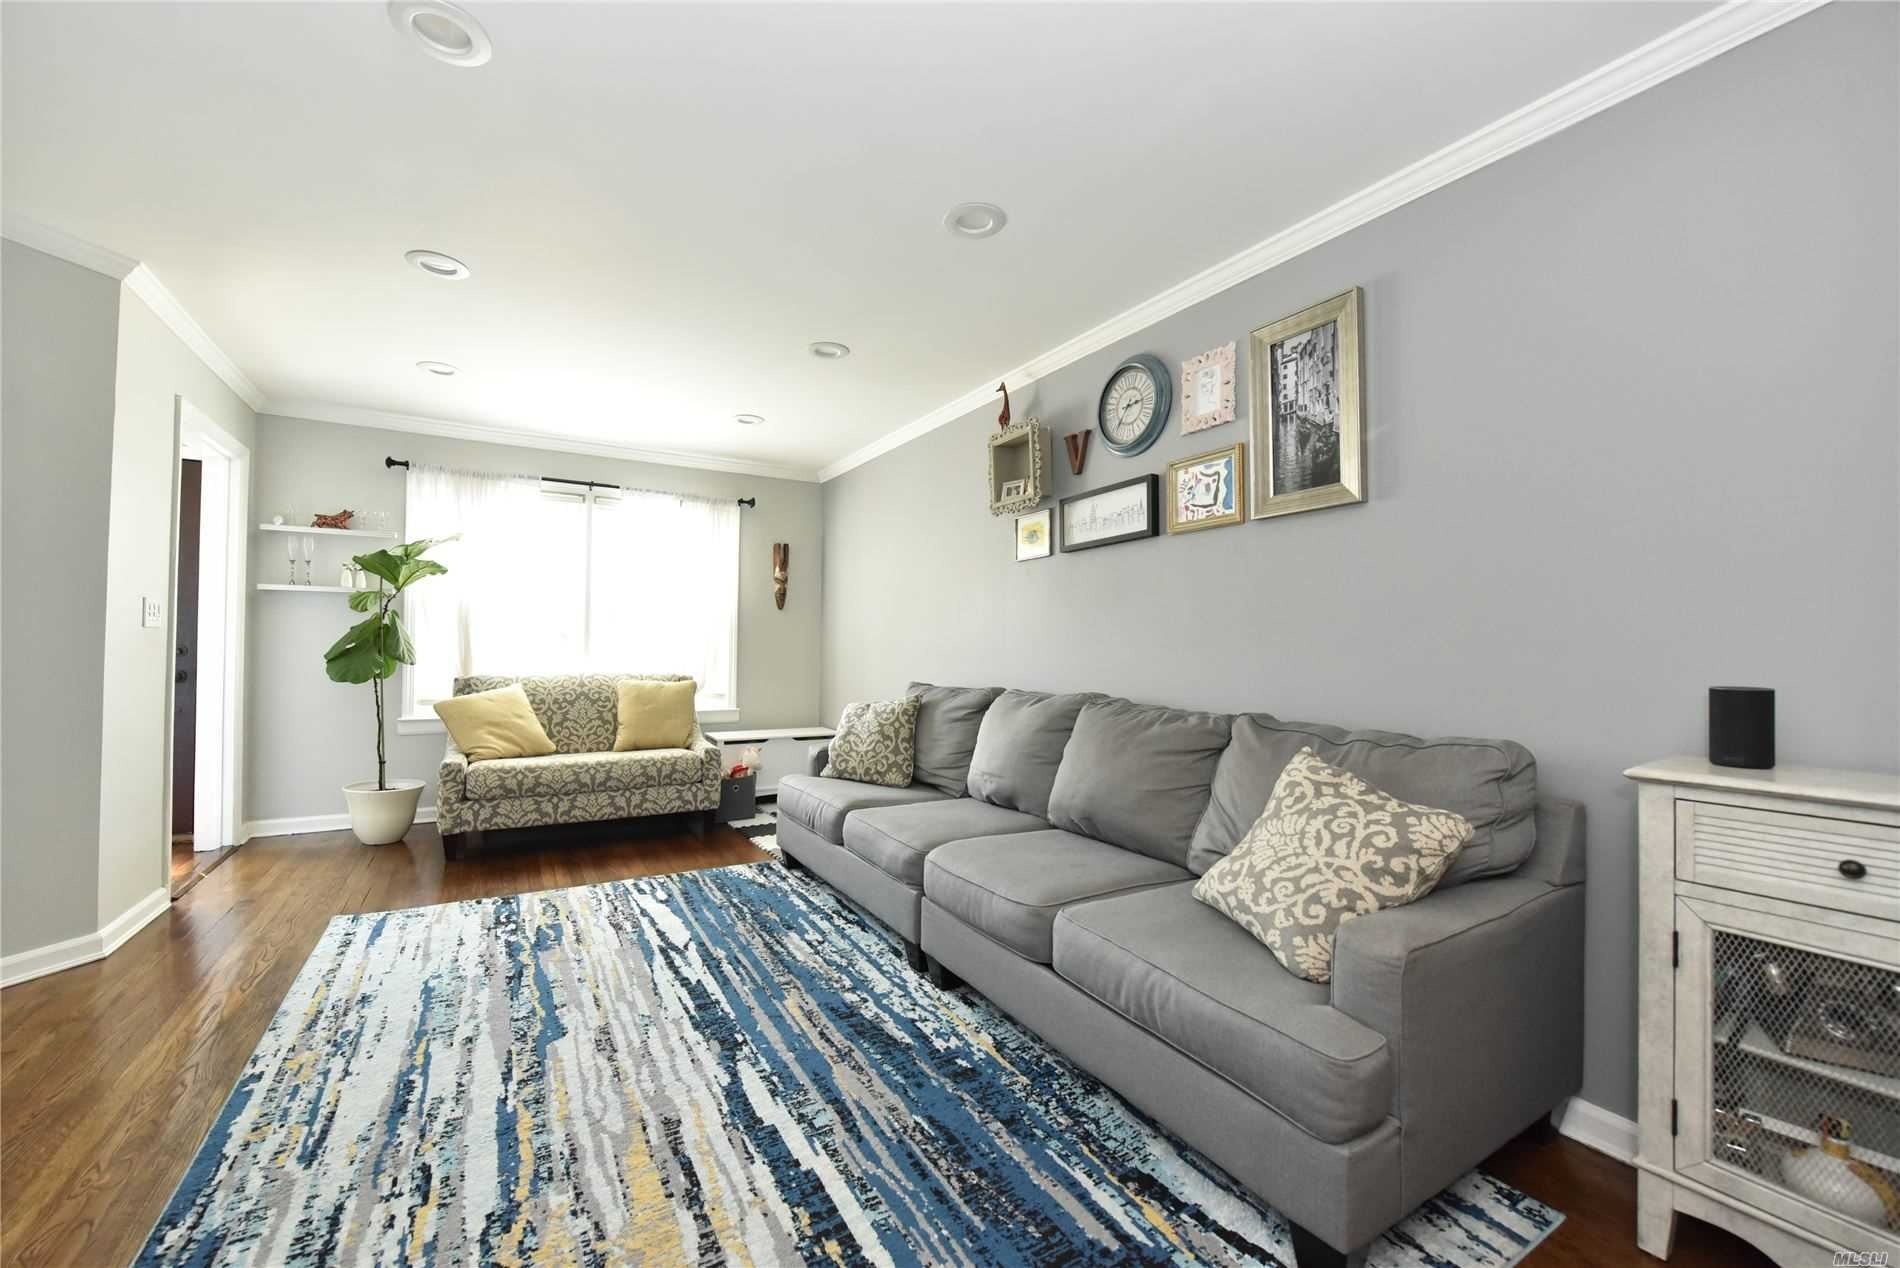 86-43 256th St, Floral Park, NY 11001 - MLS#: 3237638